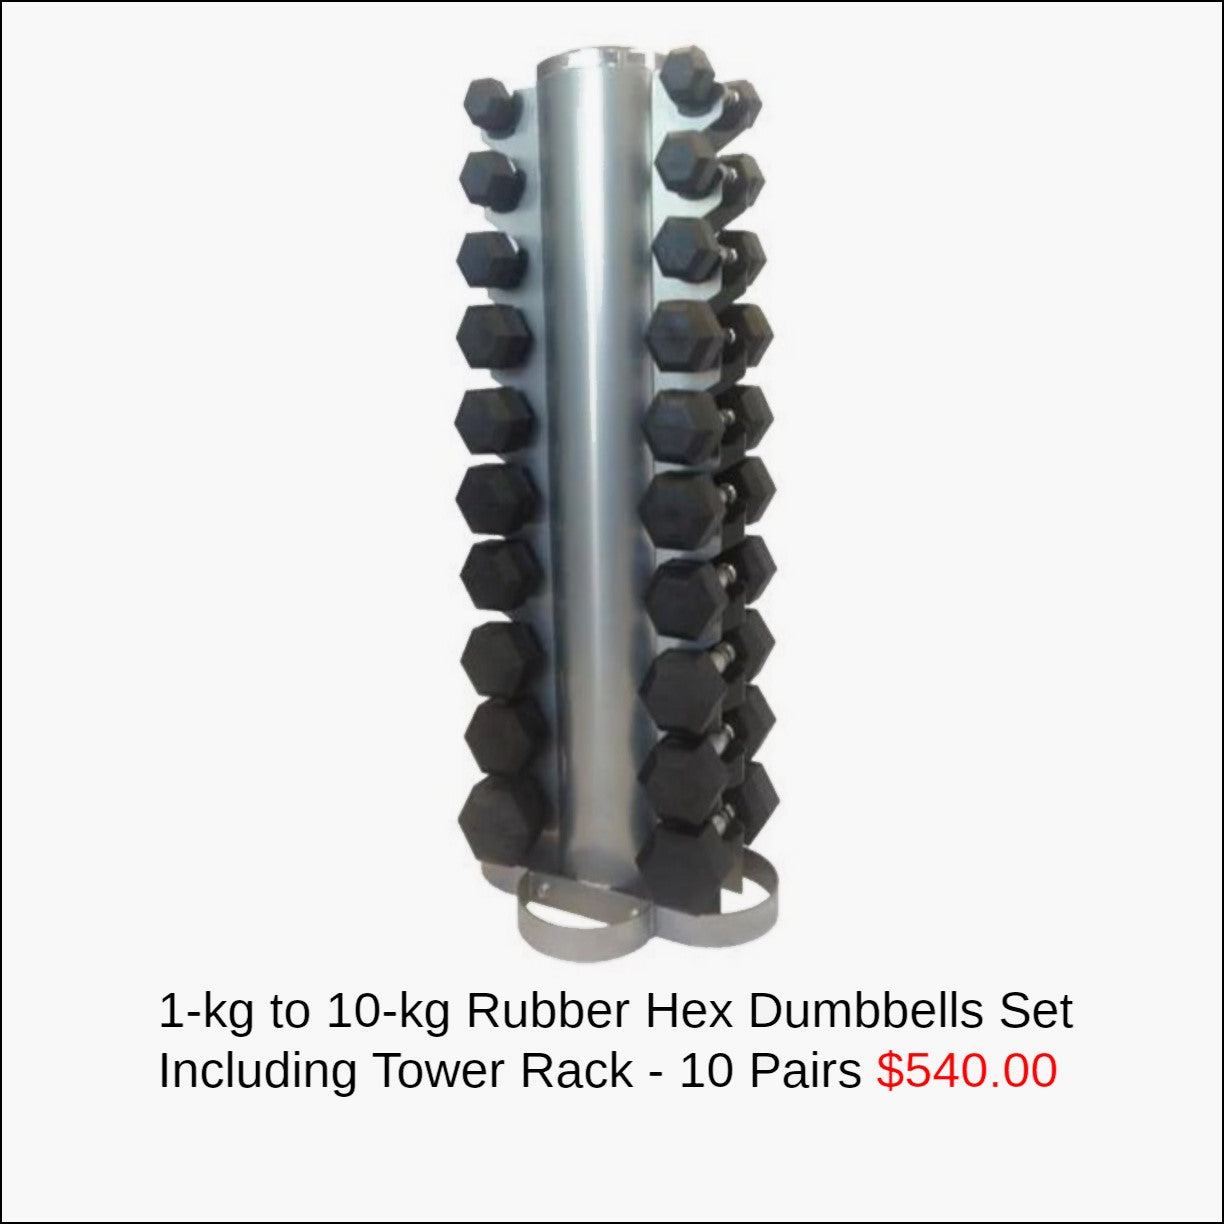 1KG TO 10KG RUBBER HEX DUMBBELLS INCLUDING Tower RACK - 10 PAIRS Muscle Motion Rubber coated hexagonal dumbbells with ergonomic handles are designed for increased comfort and improved durability. Rubber coating reduces noise improves life cycle of the product  (other finishes such as chrome and cast iron are subject to chipping and rust). Rubber coated dumbbells are also kinder on floor surfaces. The hexagonal shaped ends are designed to prevent the dumbbell from rolling on the floor or dumbbell rack.  This package includes 10 pairs of quality rubber hex dumbbells - 1kg 2kg 3kg 4kg 5kg 6kg 7kg 8kg 9kg 10kg total 110kg for this set including a silver tower rack.